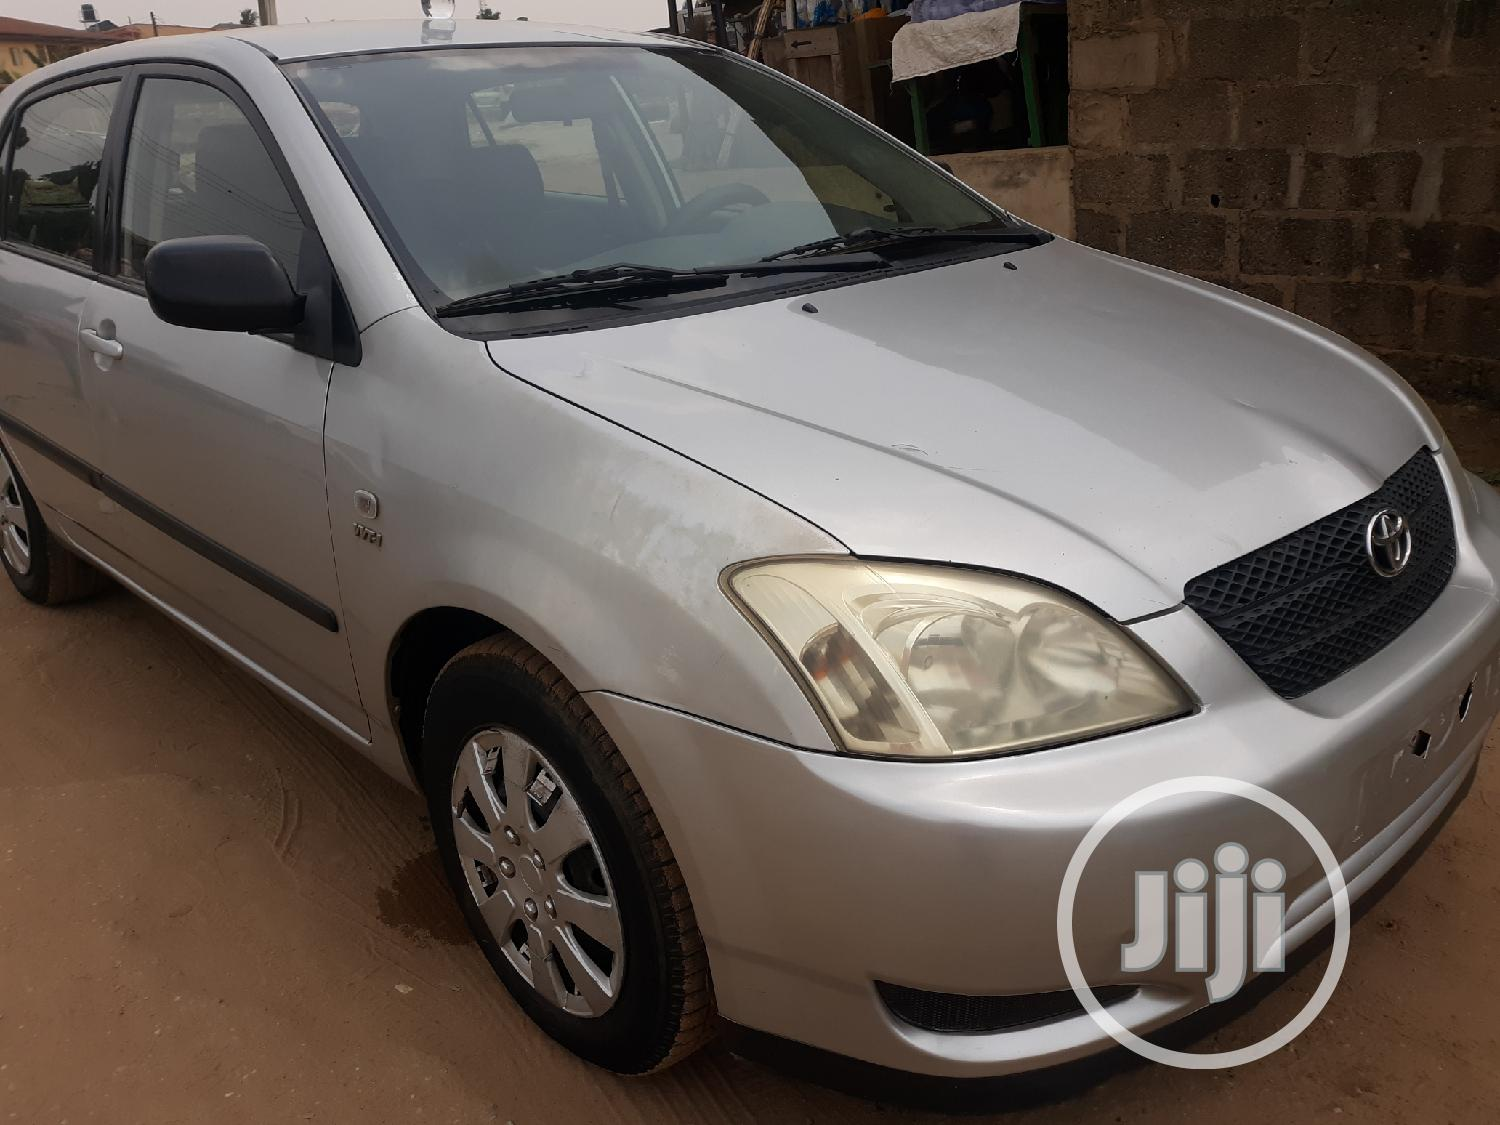 Toyota Corolla 2002 1.4 Sedan Silver | Cars for sale in Ipaja, Lagos State, Nigeria